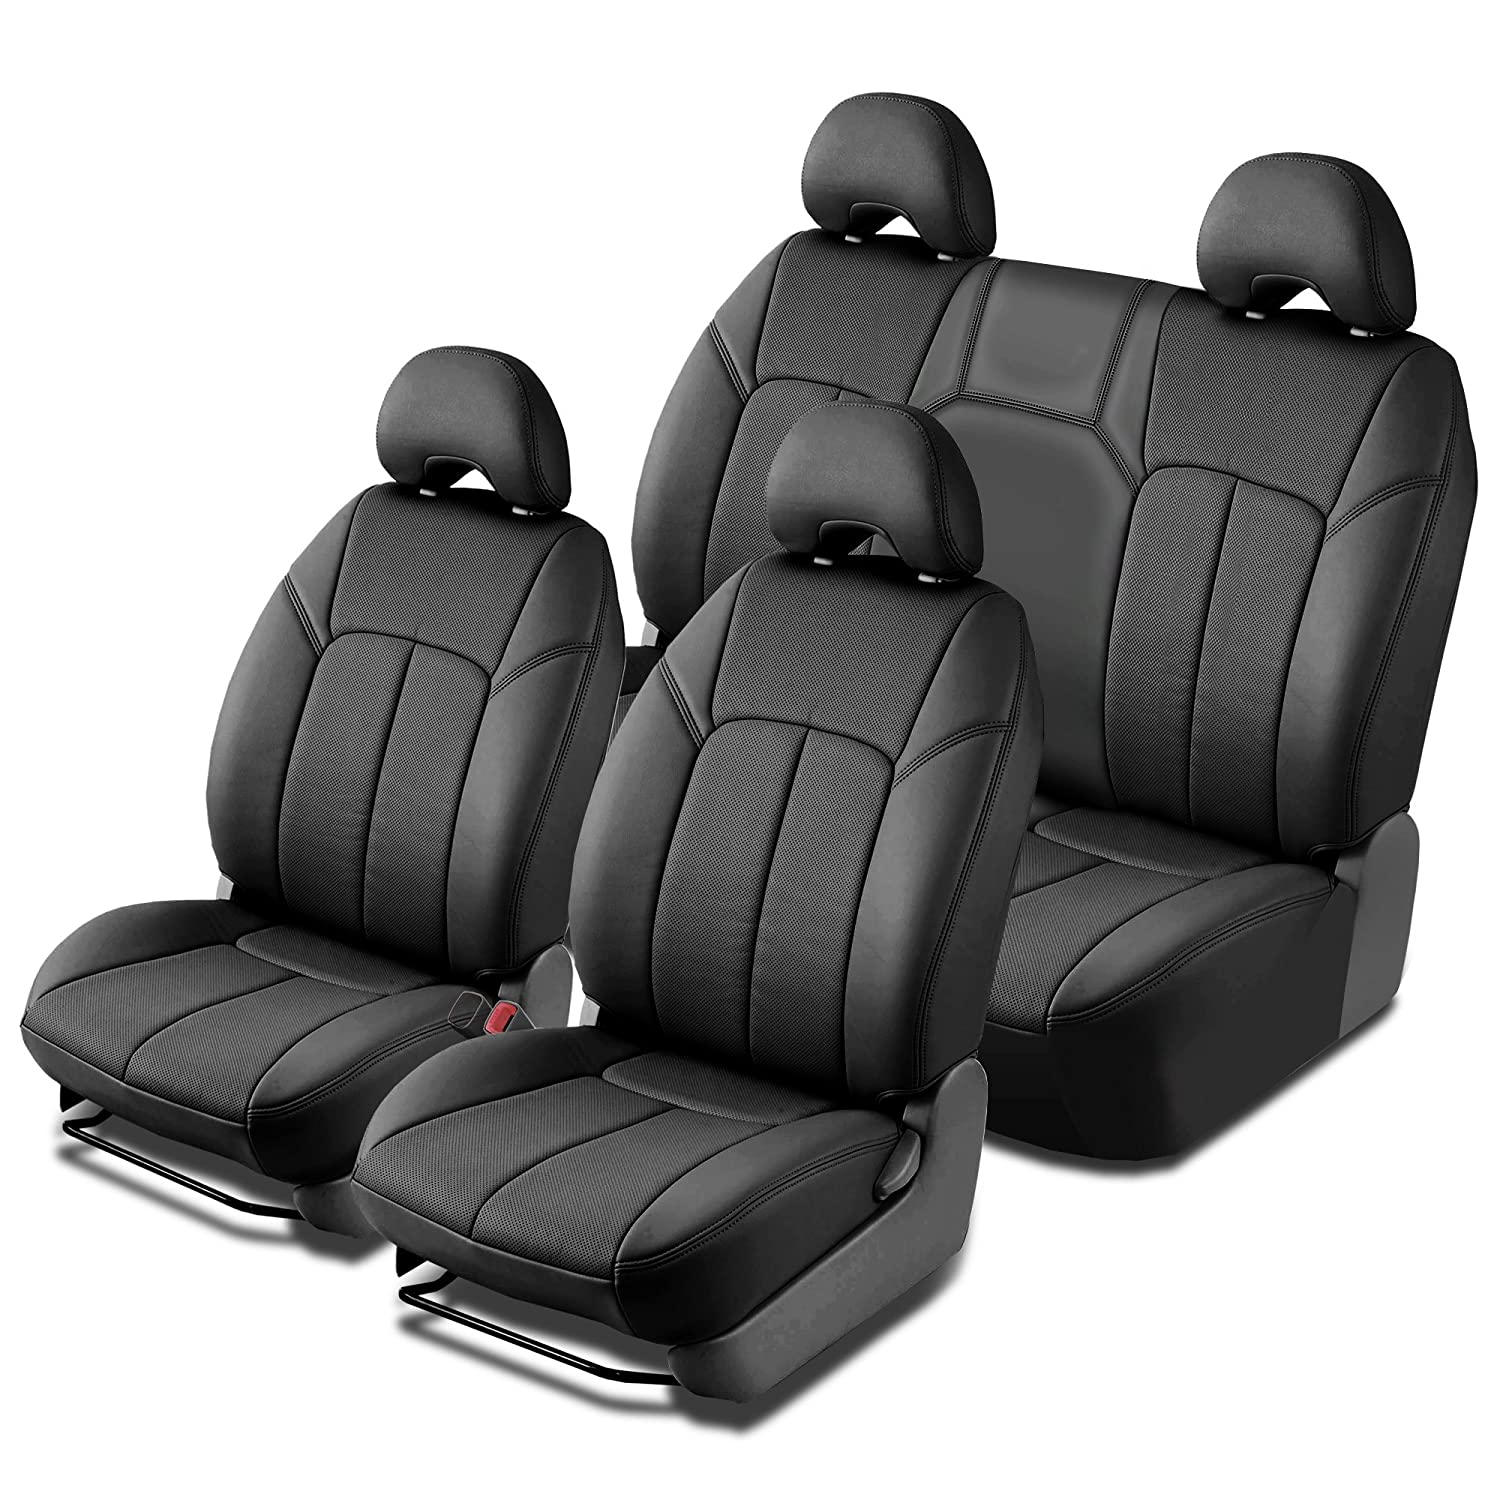 Clazzio 100612blk Black Leather Front and Rear Row Seat Cover for Scion xD